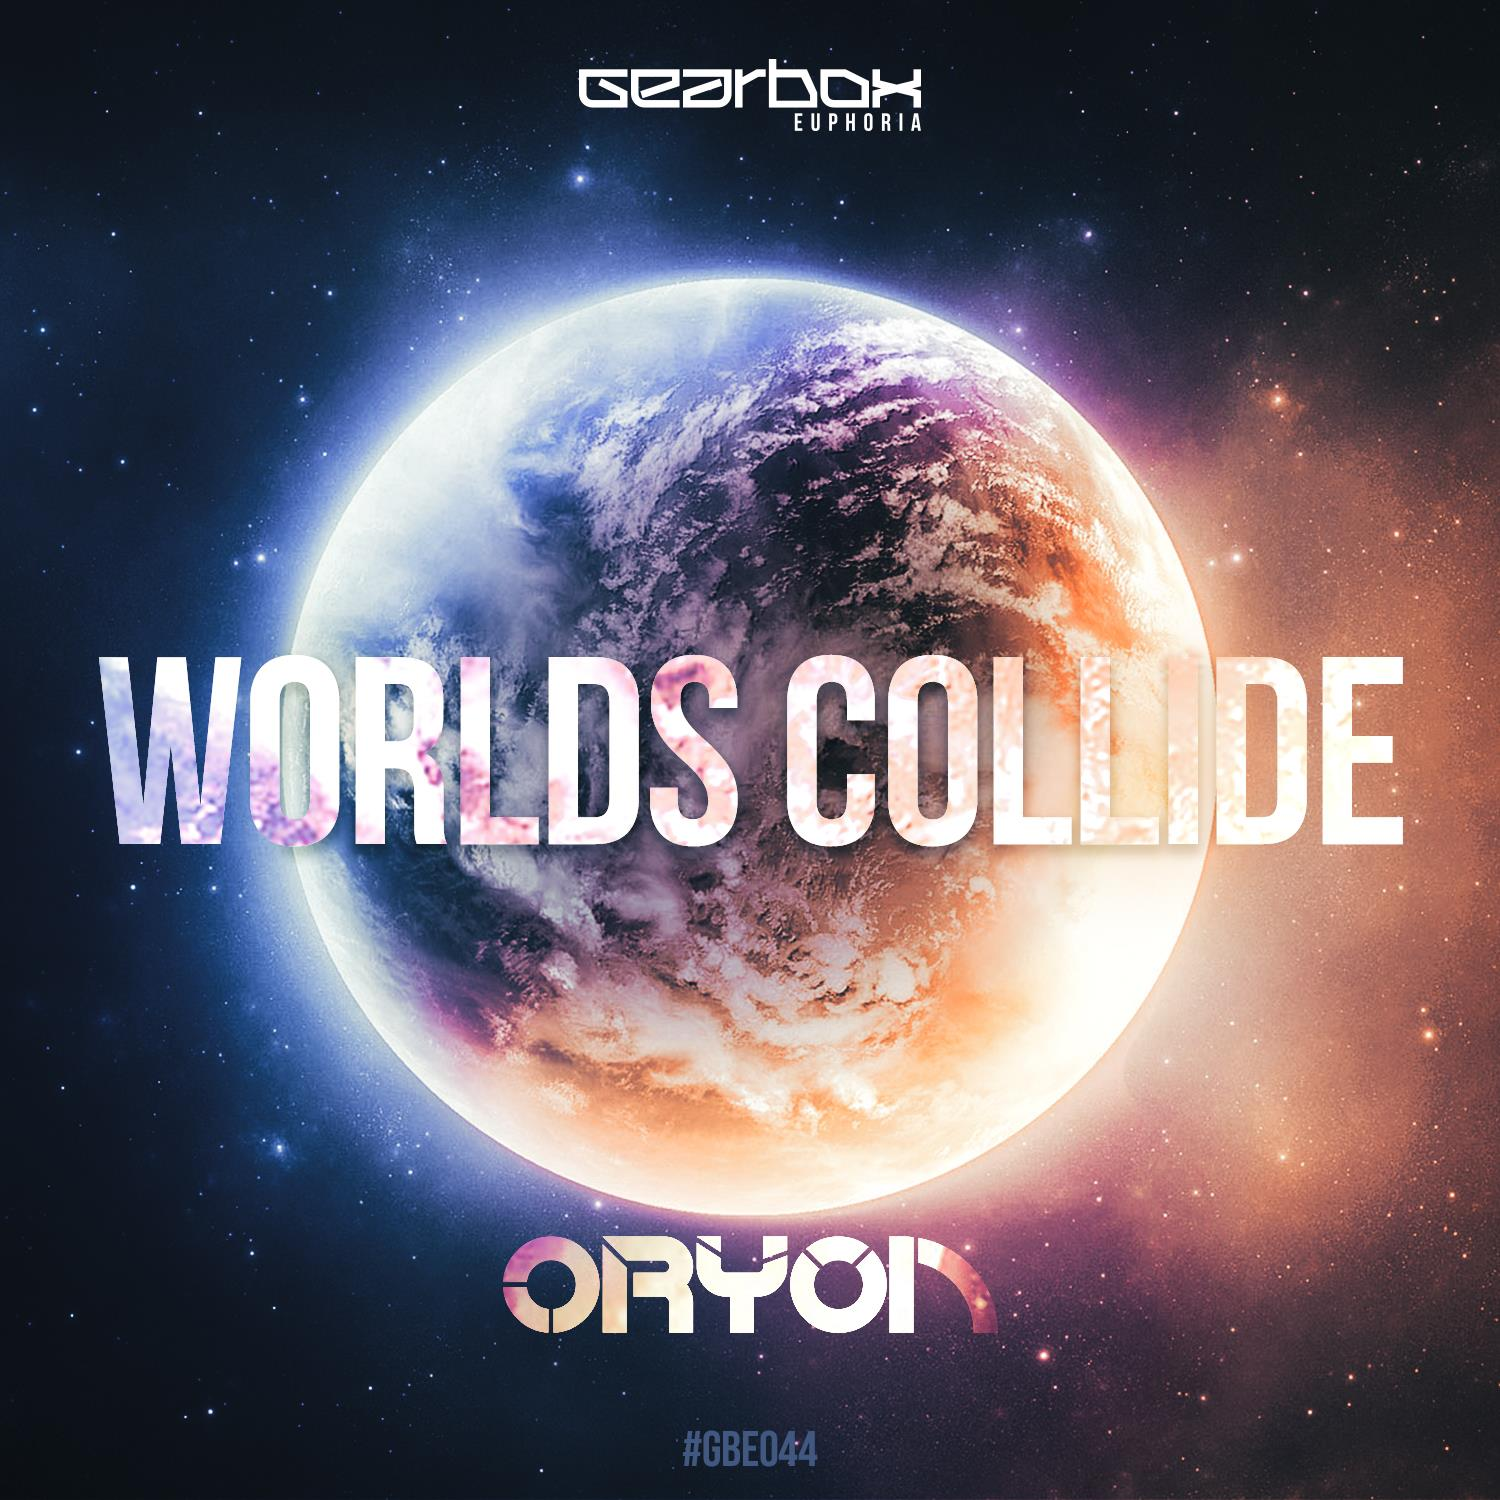 Oryon - Worlds Collide [GEARBOX EUPHORIA] GBE044